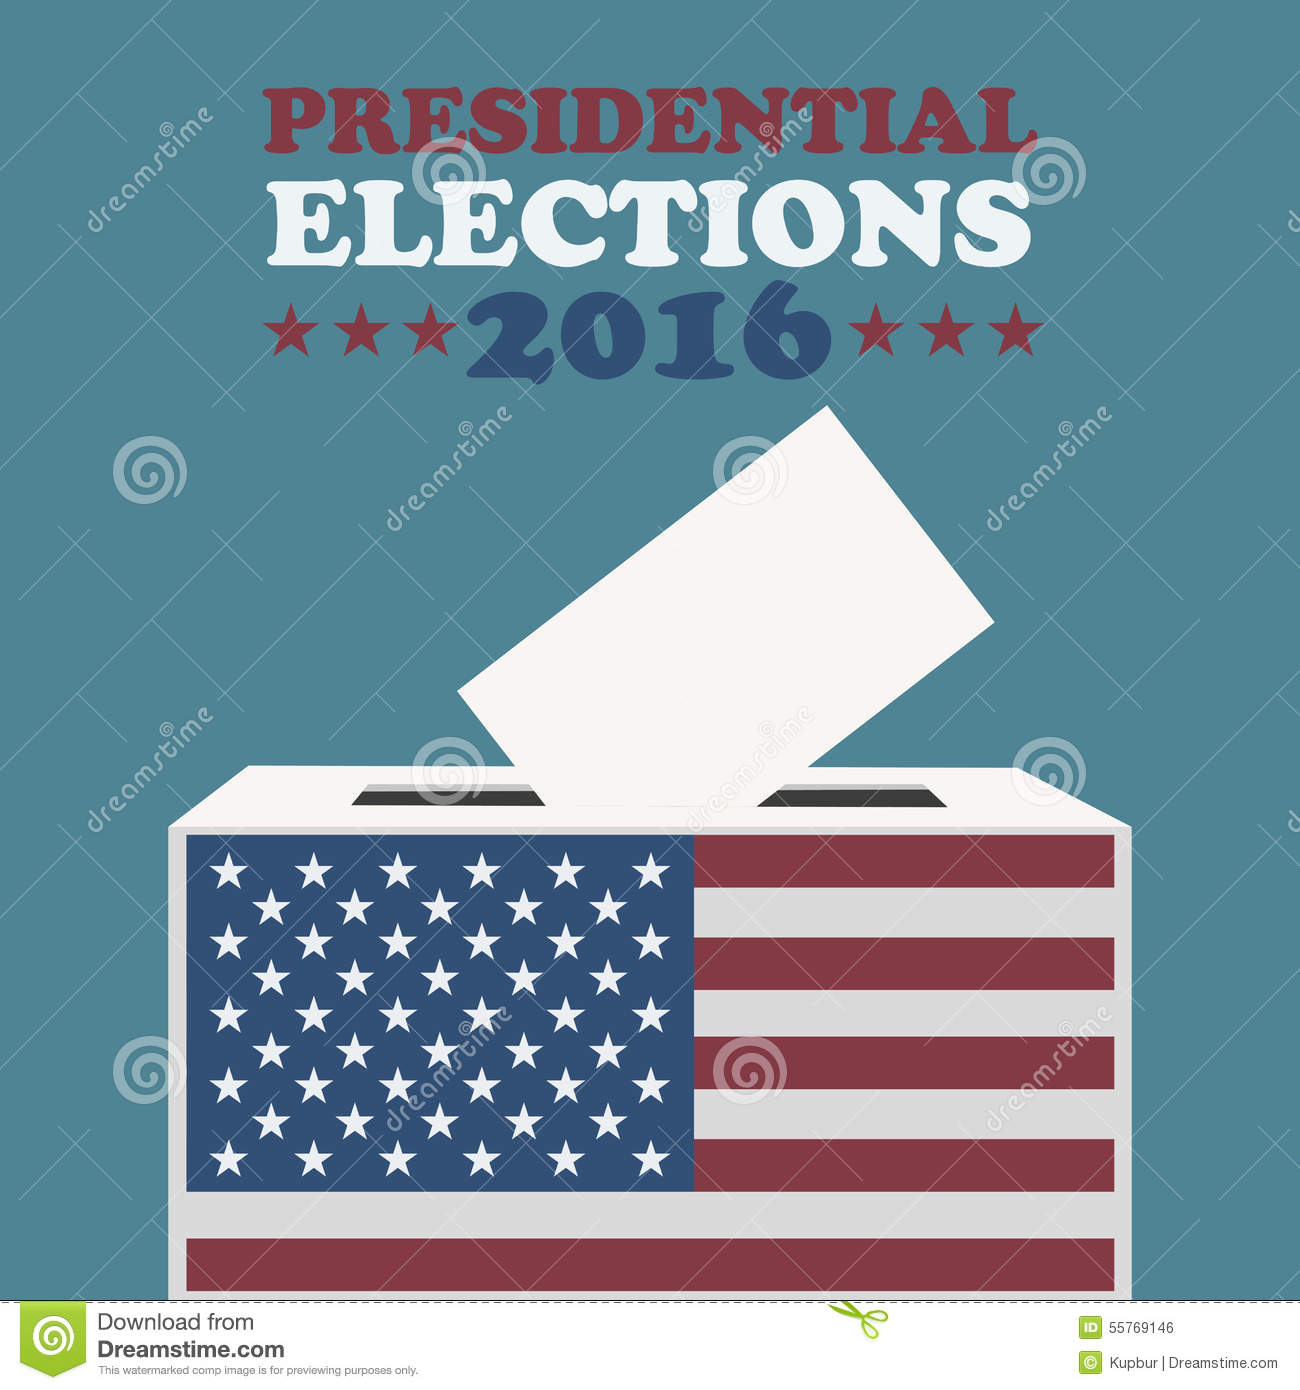 Elections and Technology